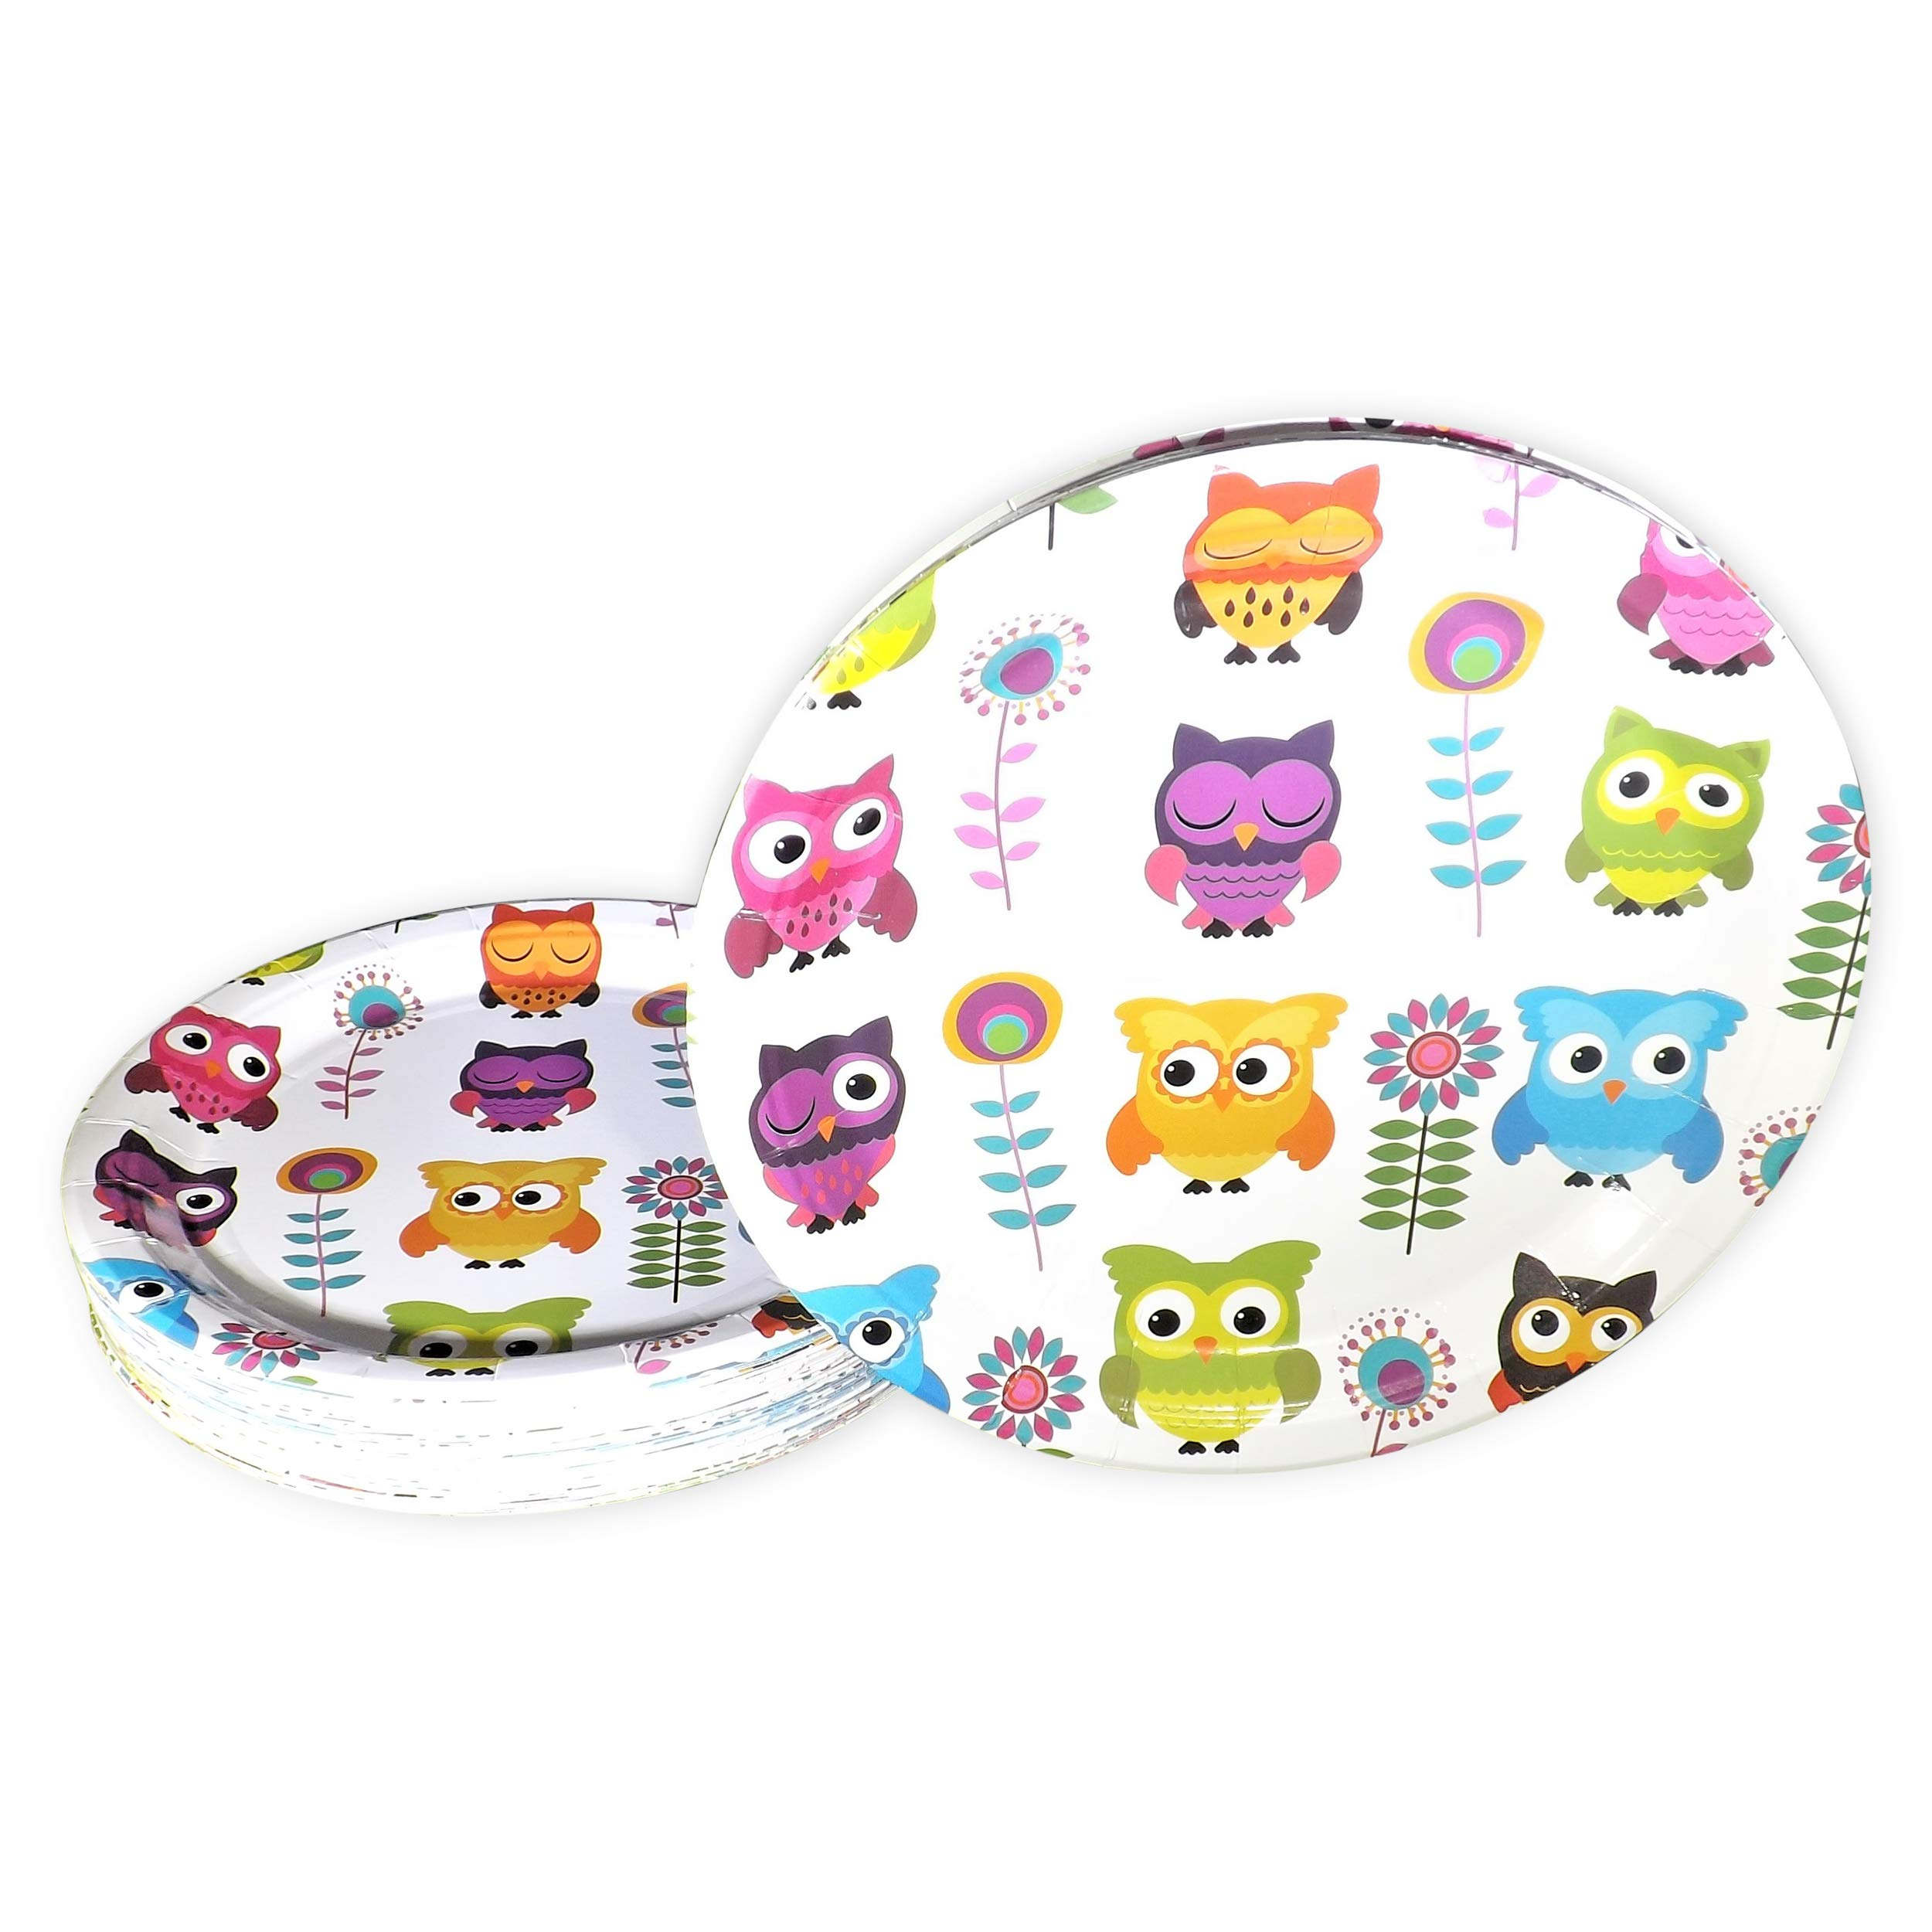 """9"""" Round Disposable Paper Plates Bulk, 50 Pack Eco-Friendly Tableware by Fantastic Flag 